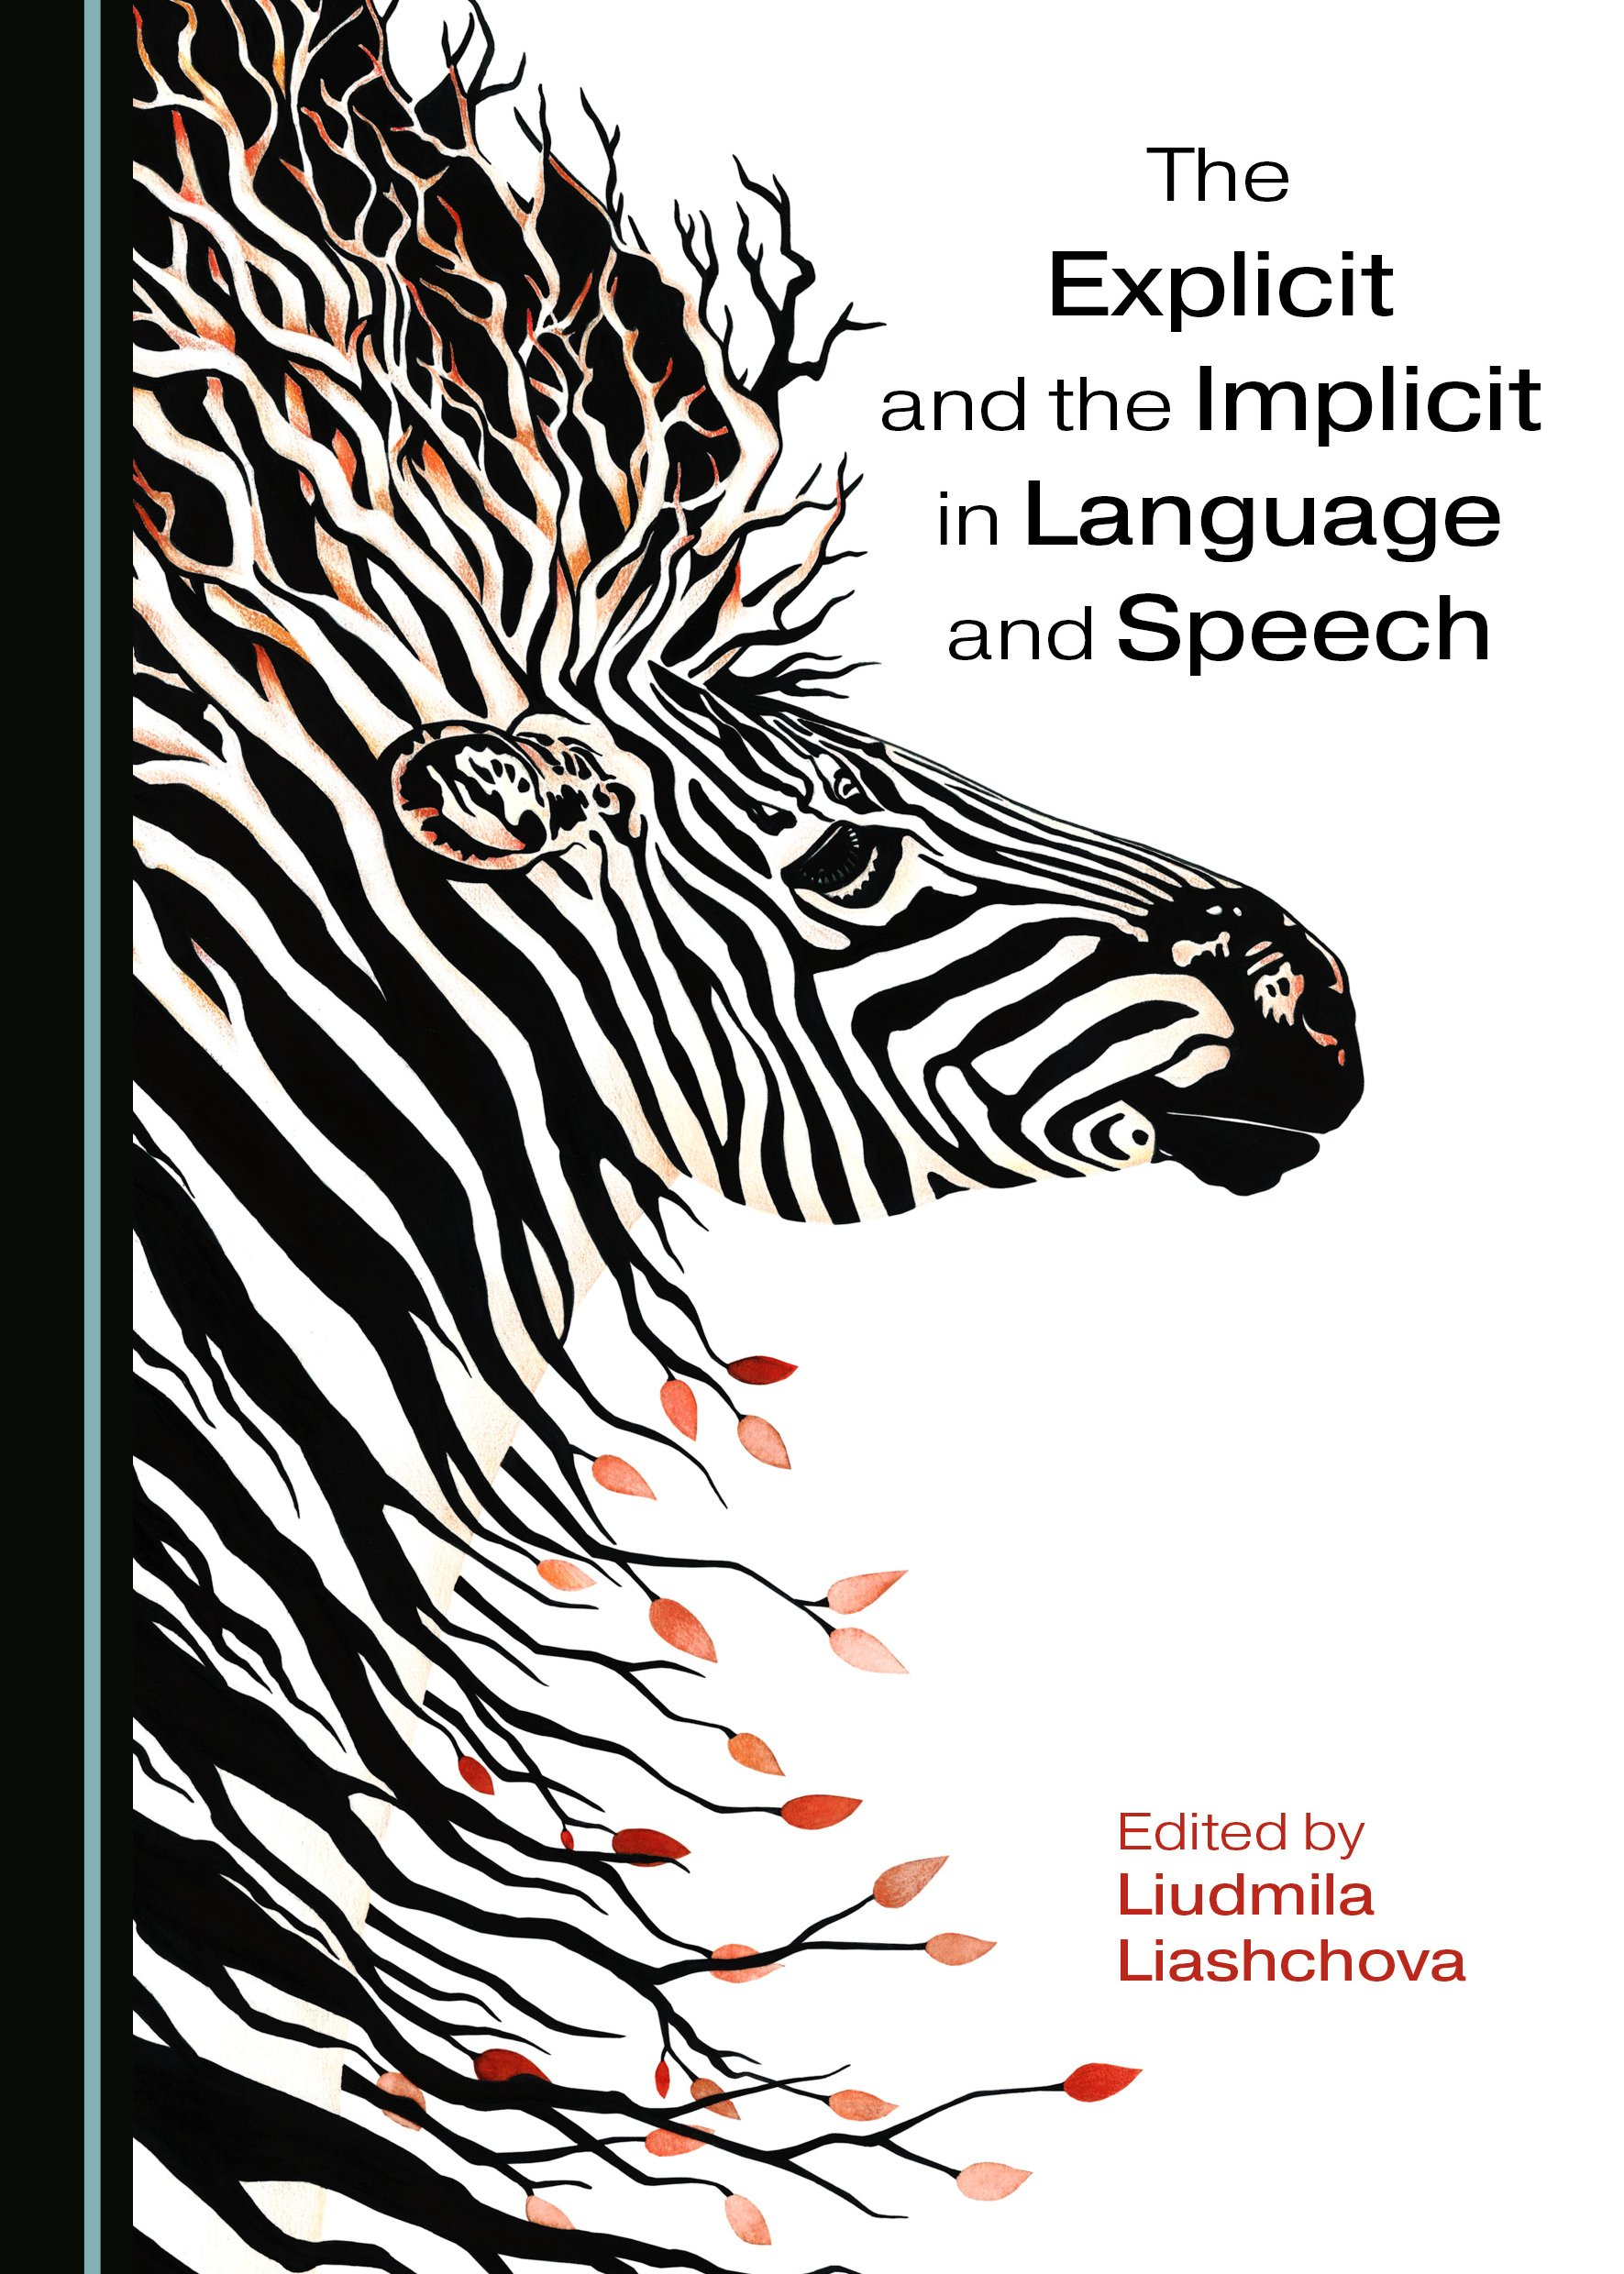 The Explicit and the Implicit in Language and Speech